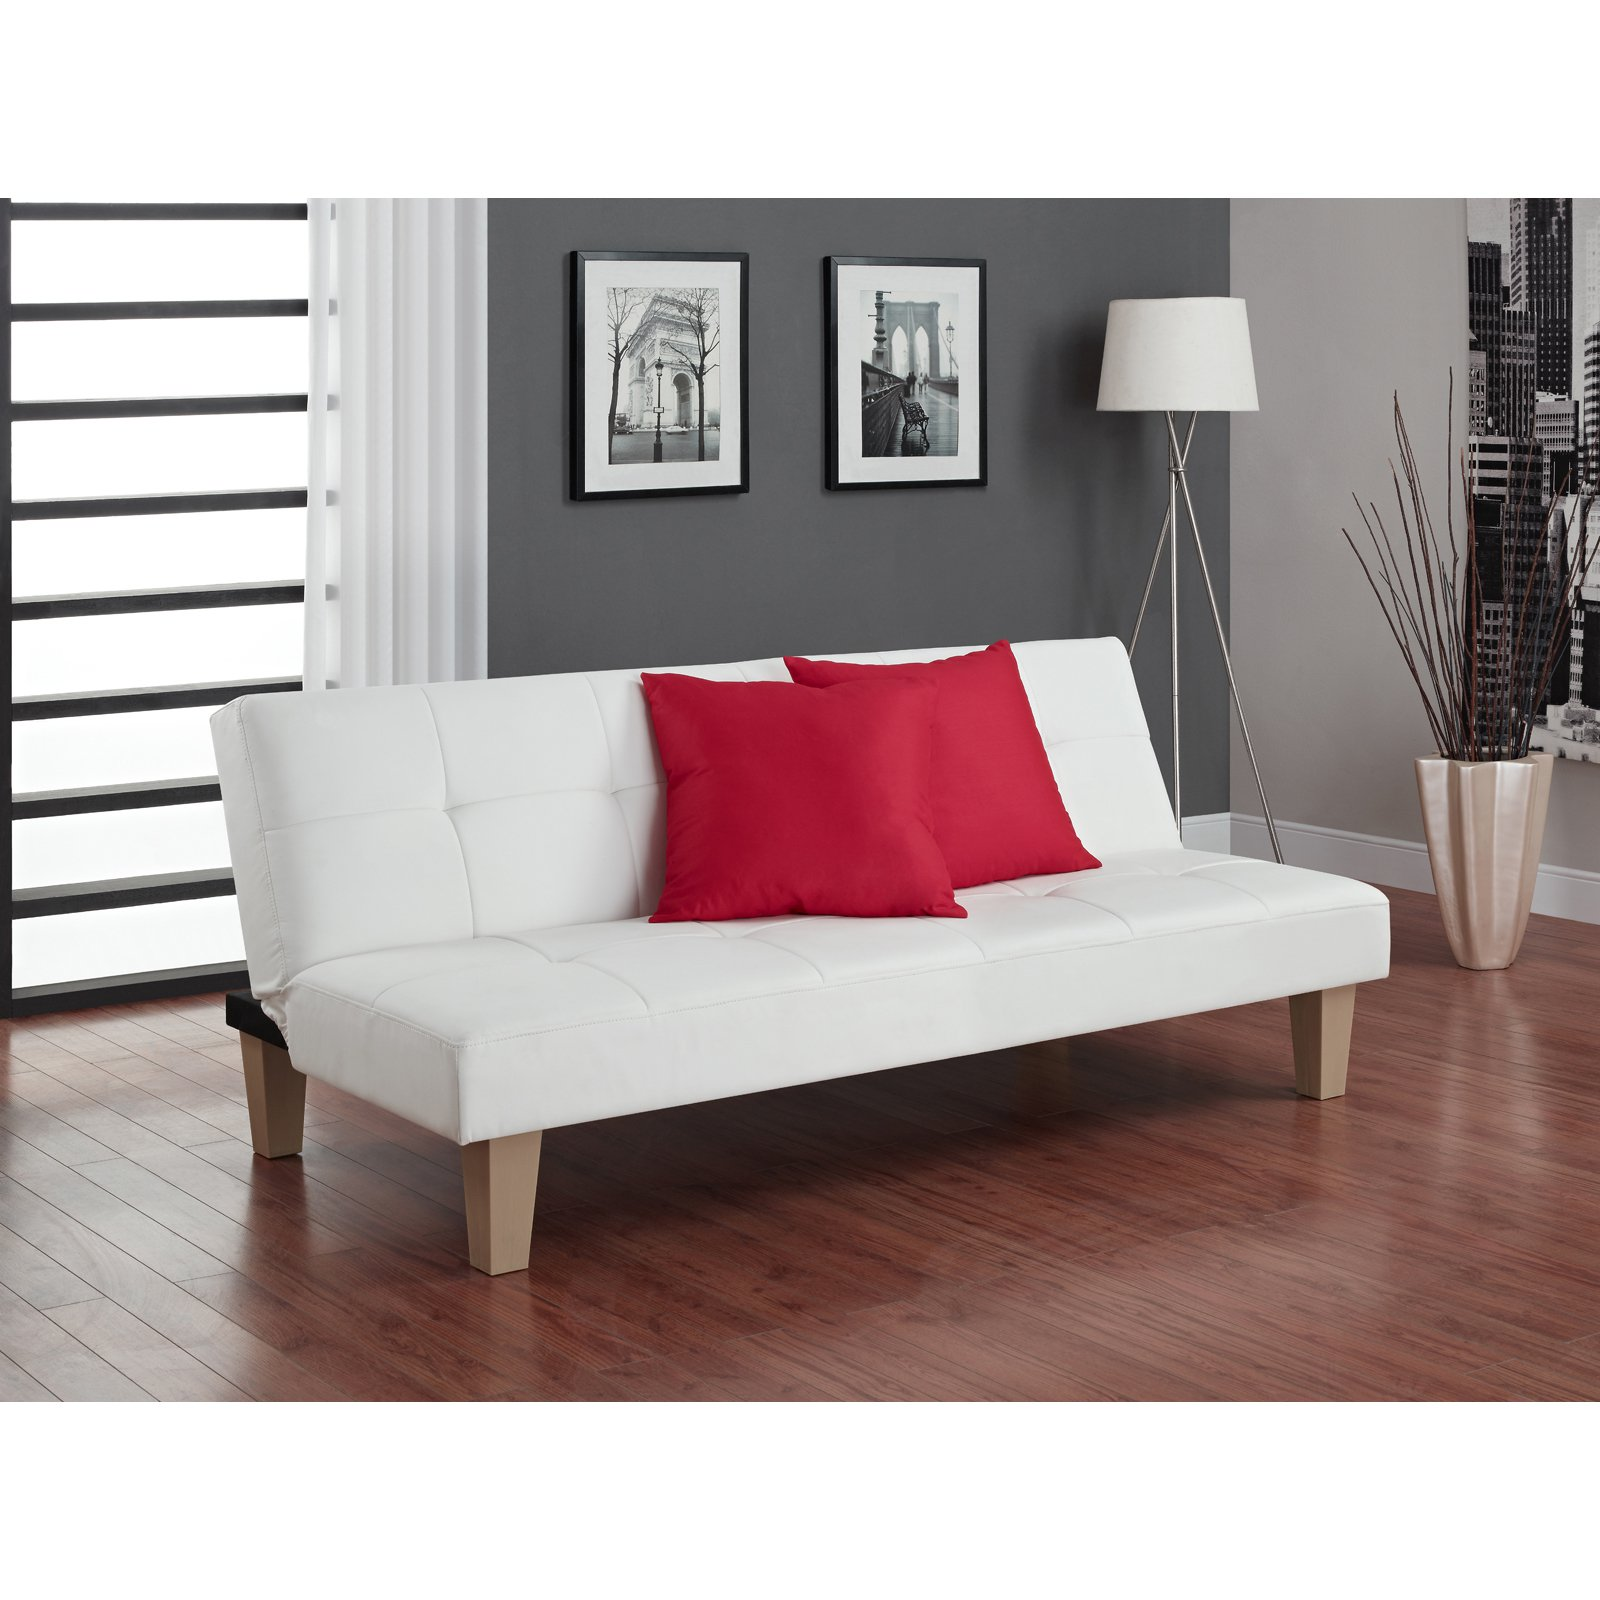 DHP Aria Futon Sofa Bed, White Faux Leather Upholstery